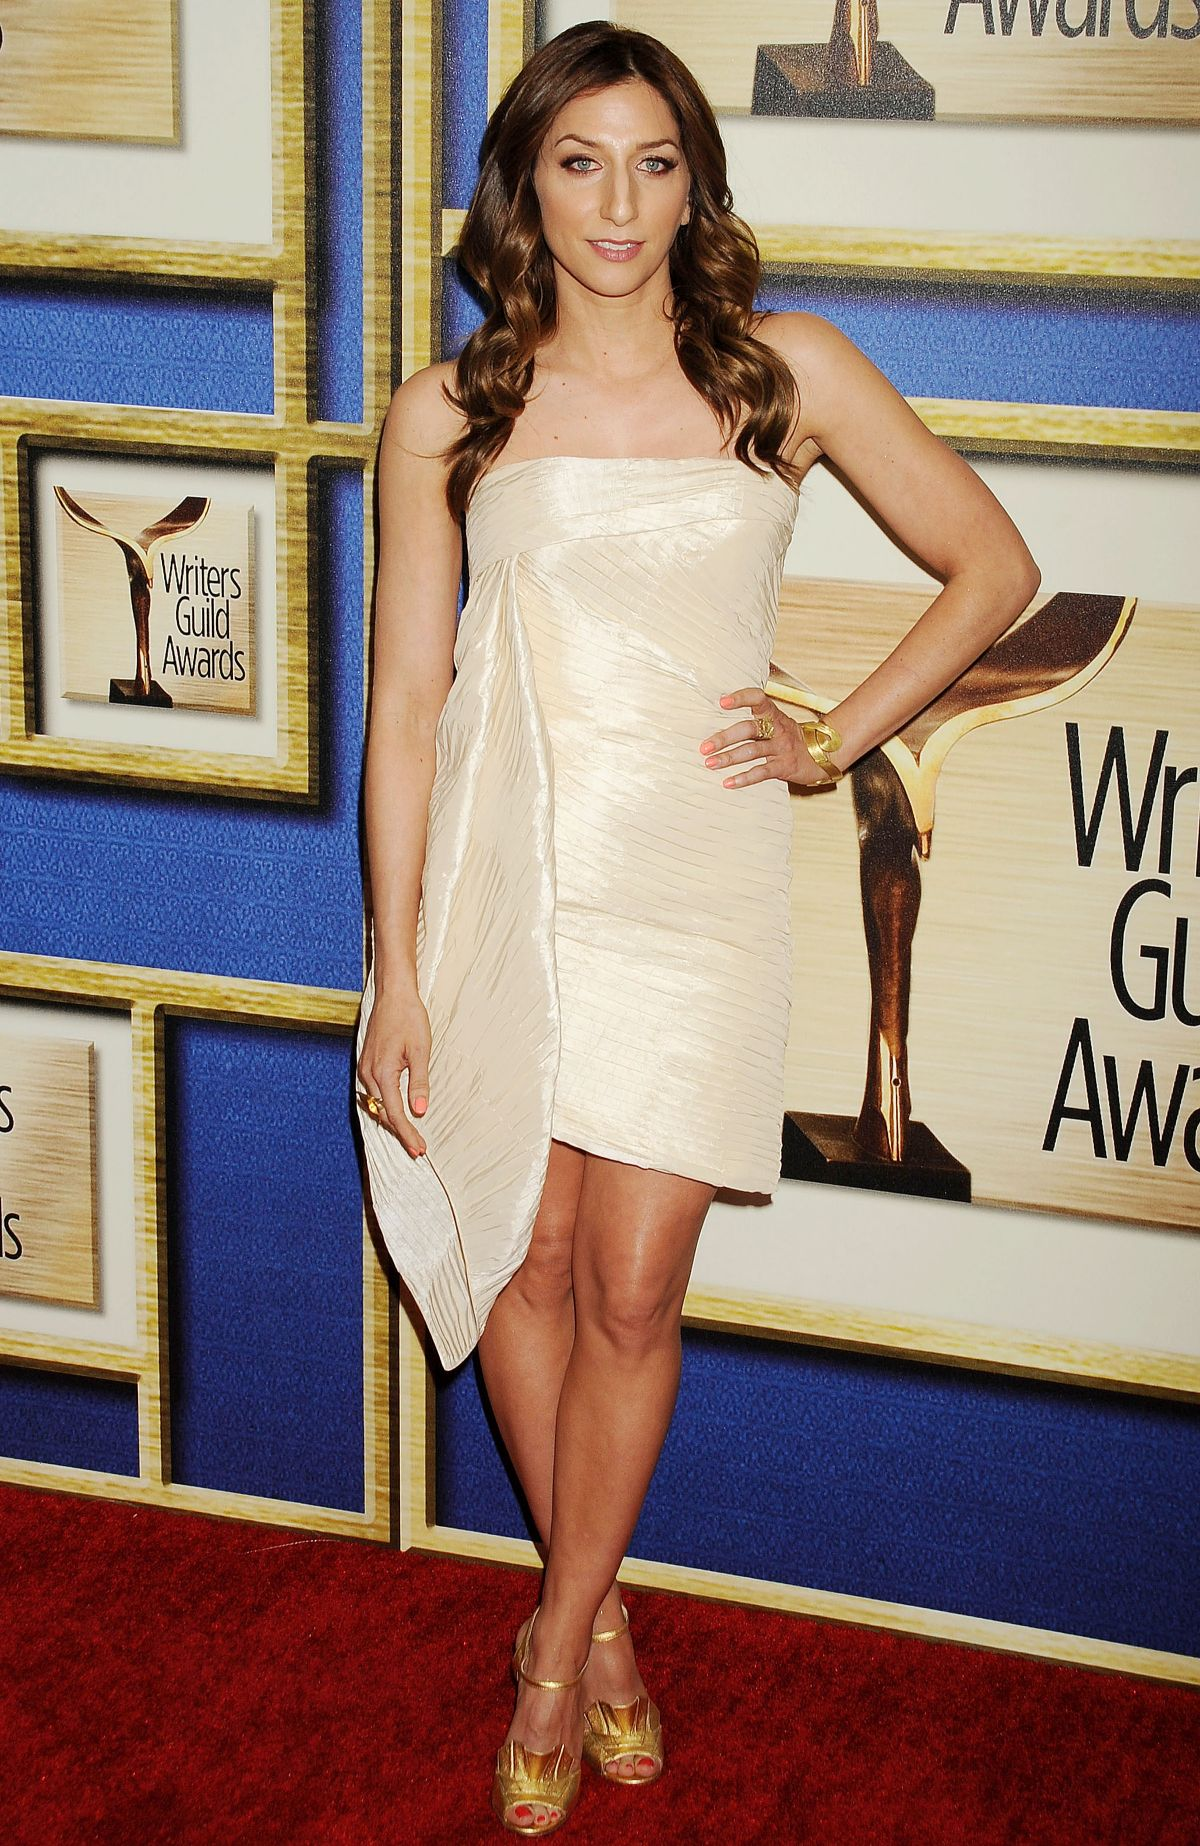 CHELSEA PERETTI at 2015 Writers Guild Awards in Los Angeles